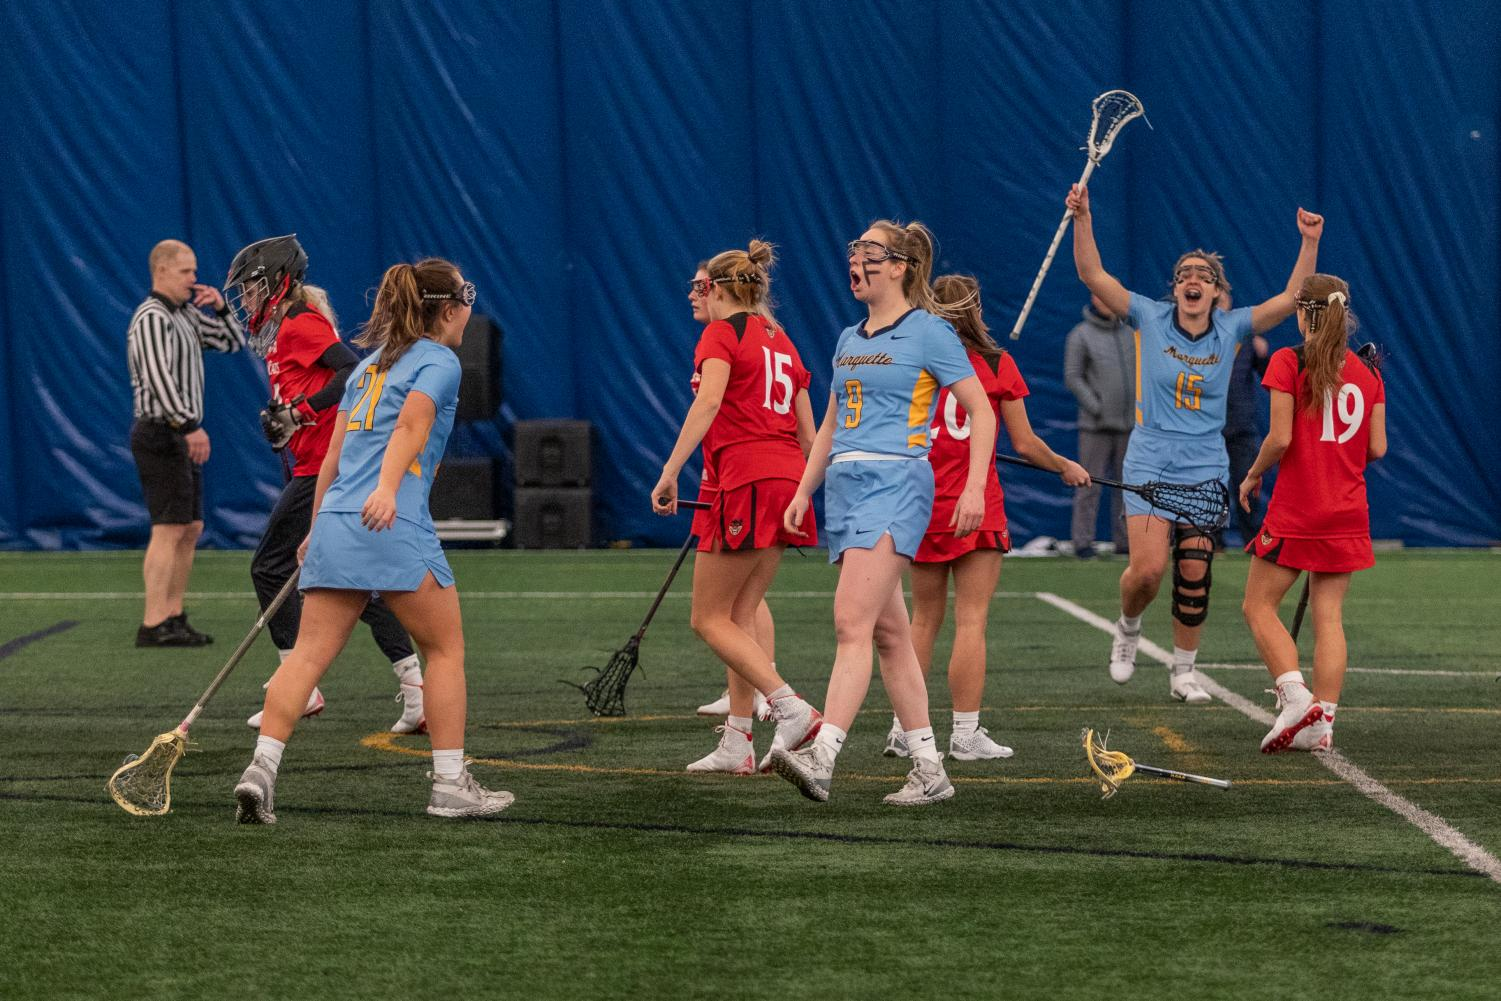 Megan Menzuber (9) celebrates after scoring a goal in Marquette's 17-6 win over Cincinnati. She led the team with six goals, tying a program high for most goals in a game.